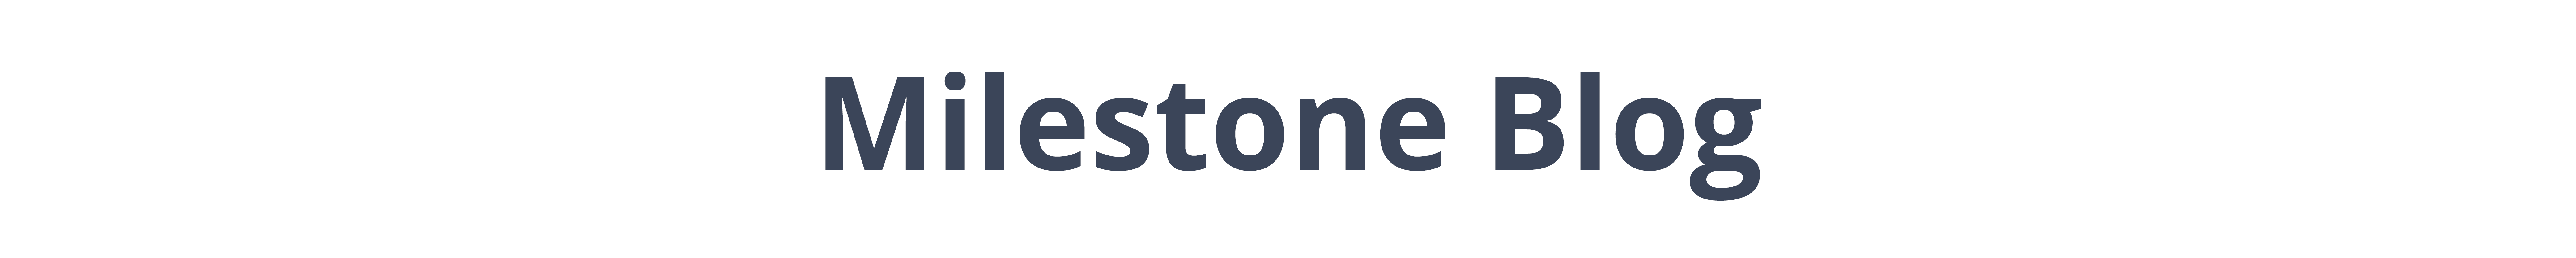 Milestone blog logo for Skyline Place Senior Living in Sonora, California